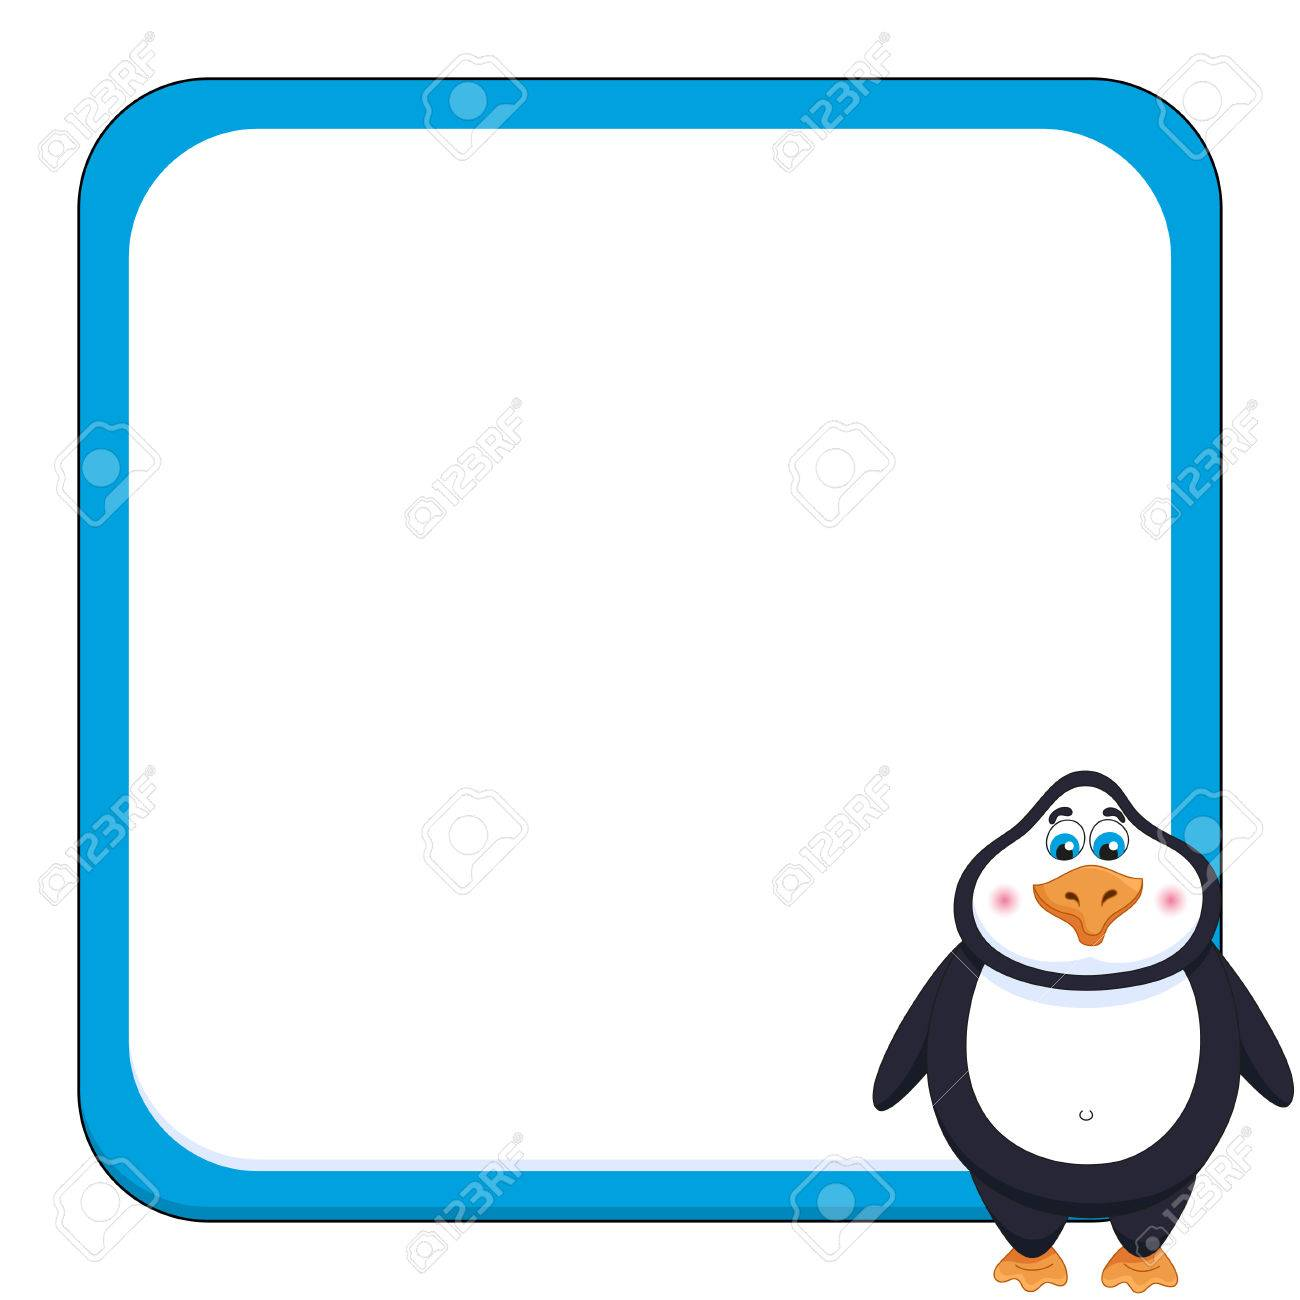 School background with cheerful cute penguin funny frame and birdie - 63042700